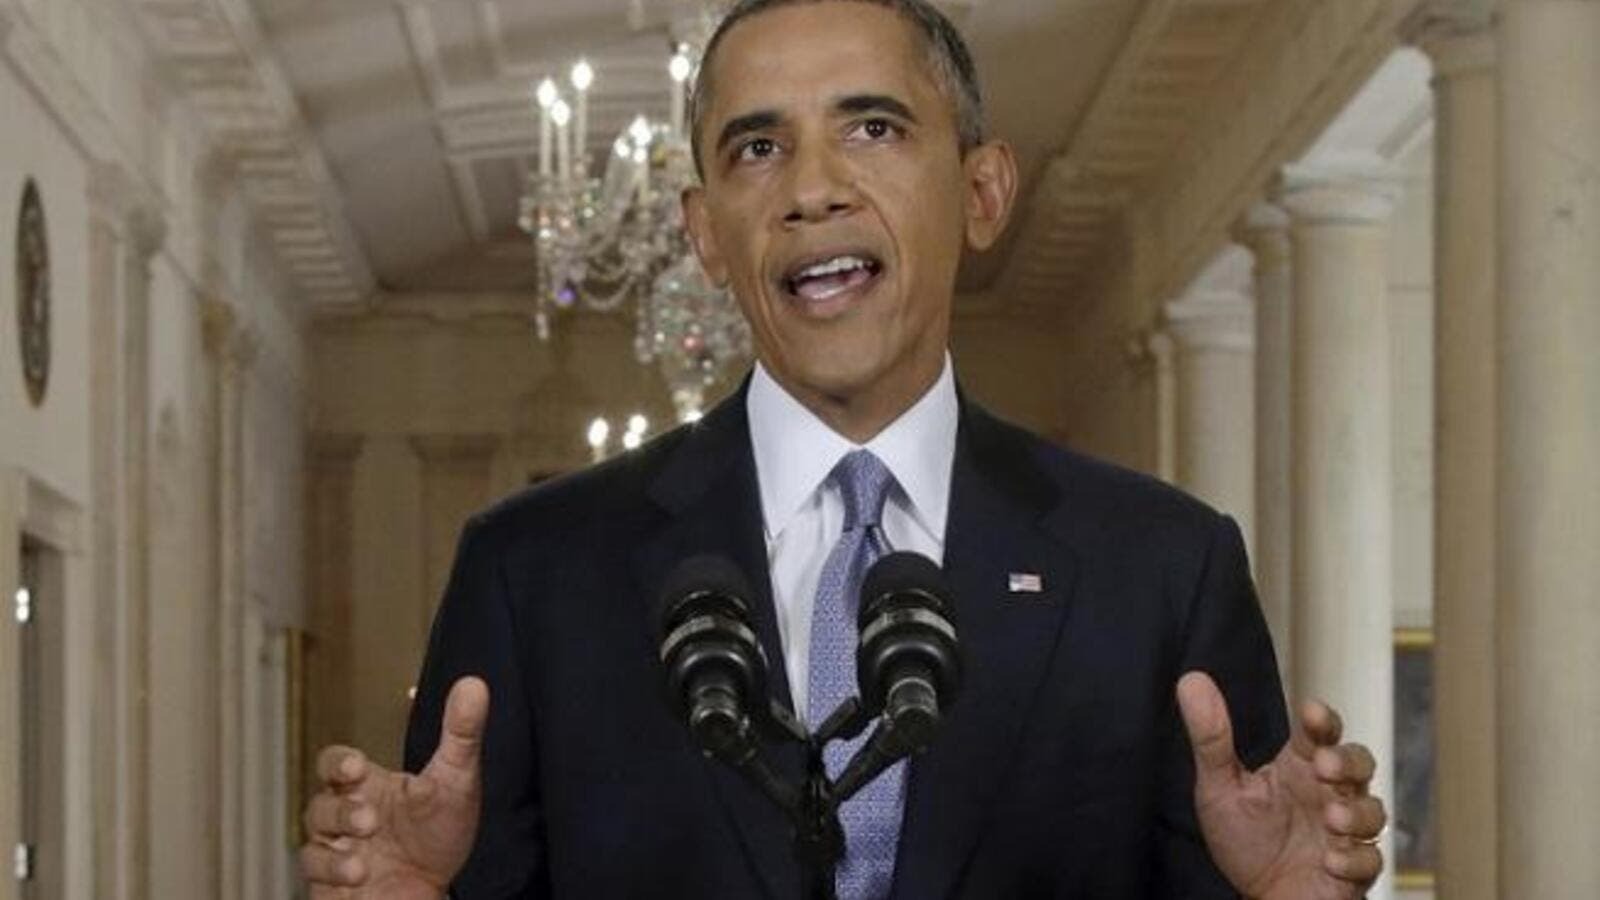 In a televised address, President Obama promised to pursue a diplomatic solution to the crisis in Syria.